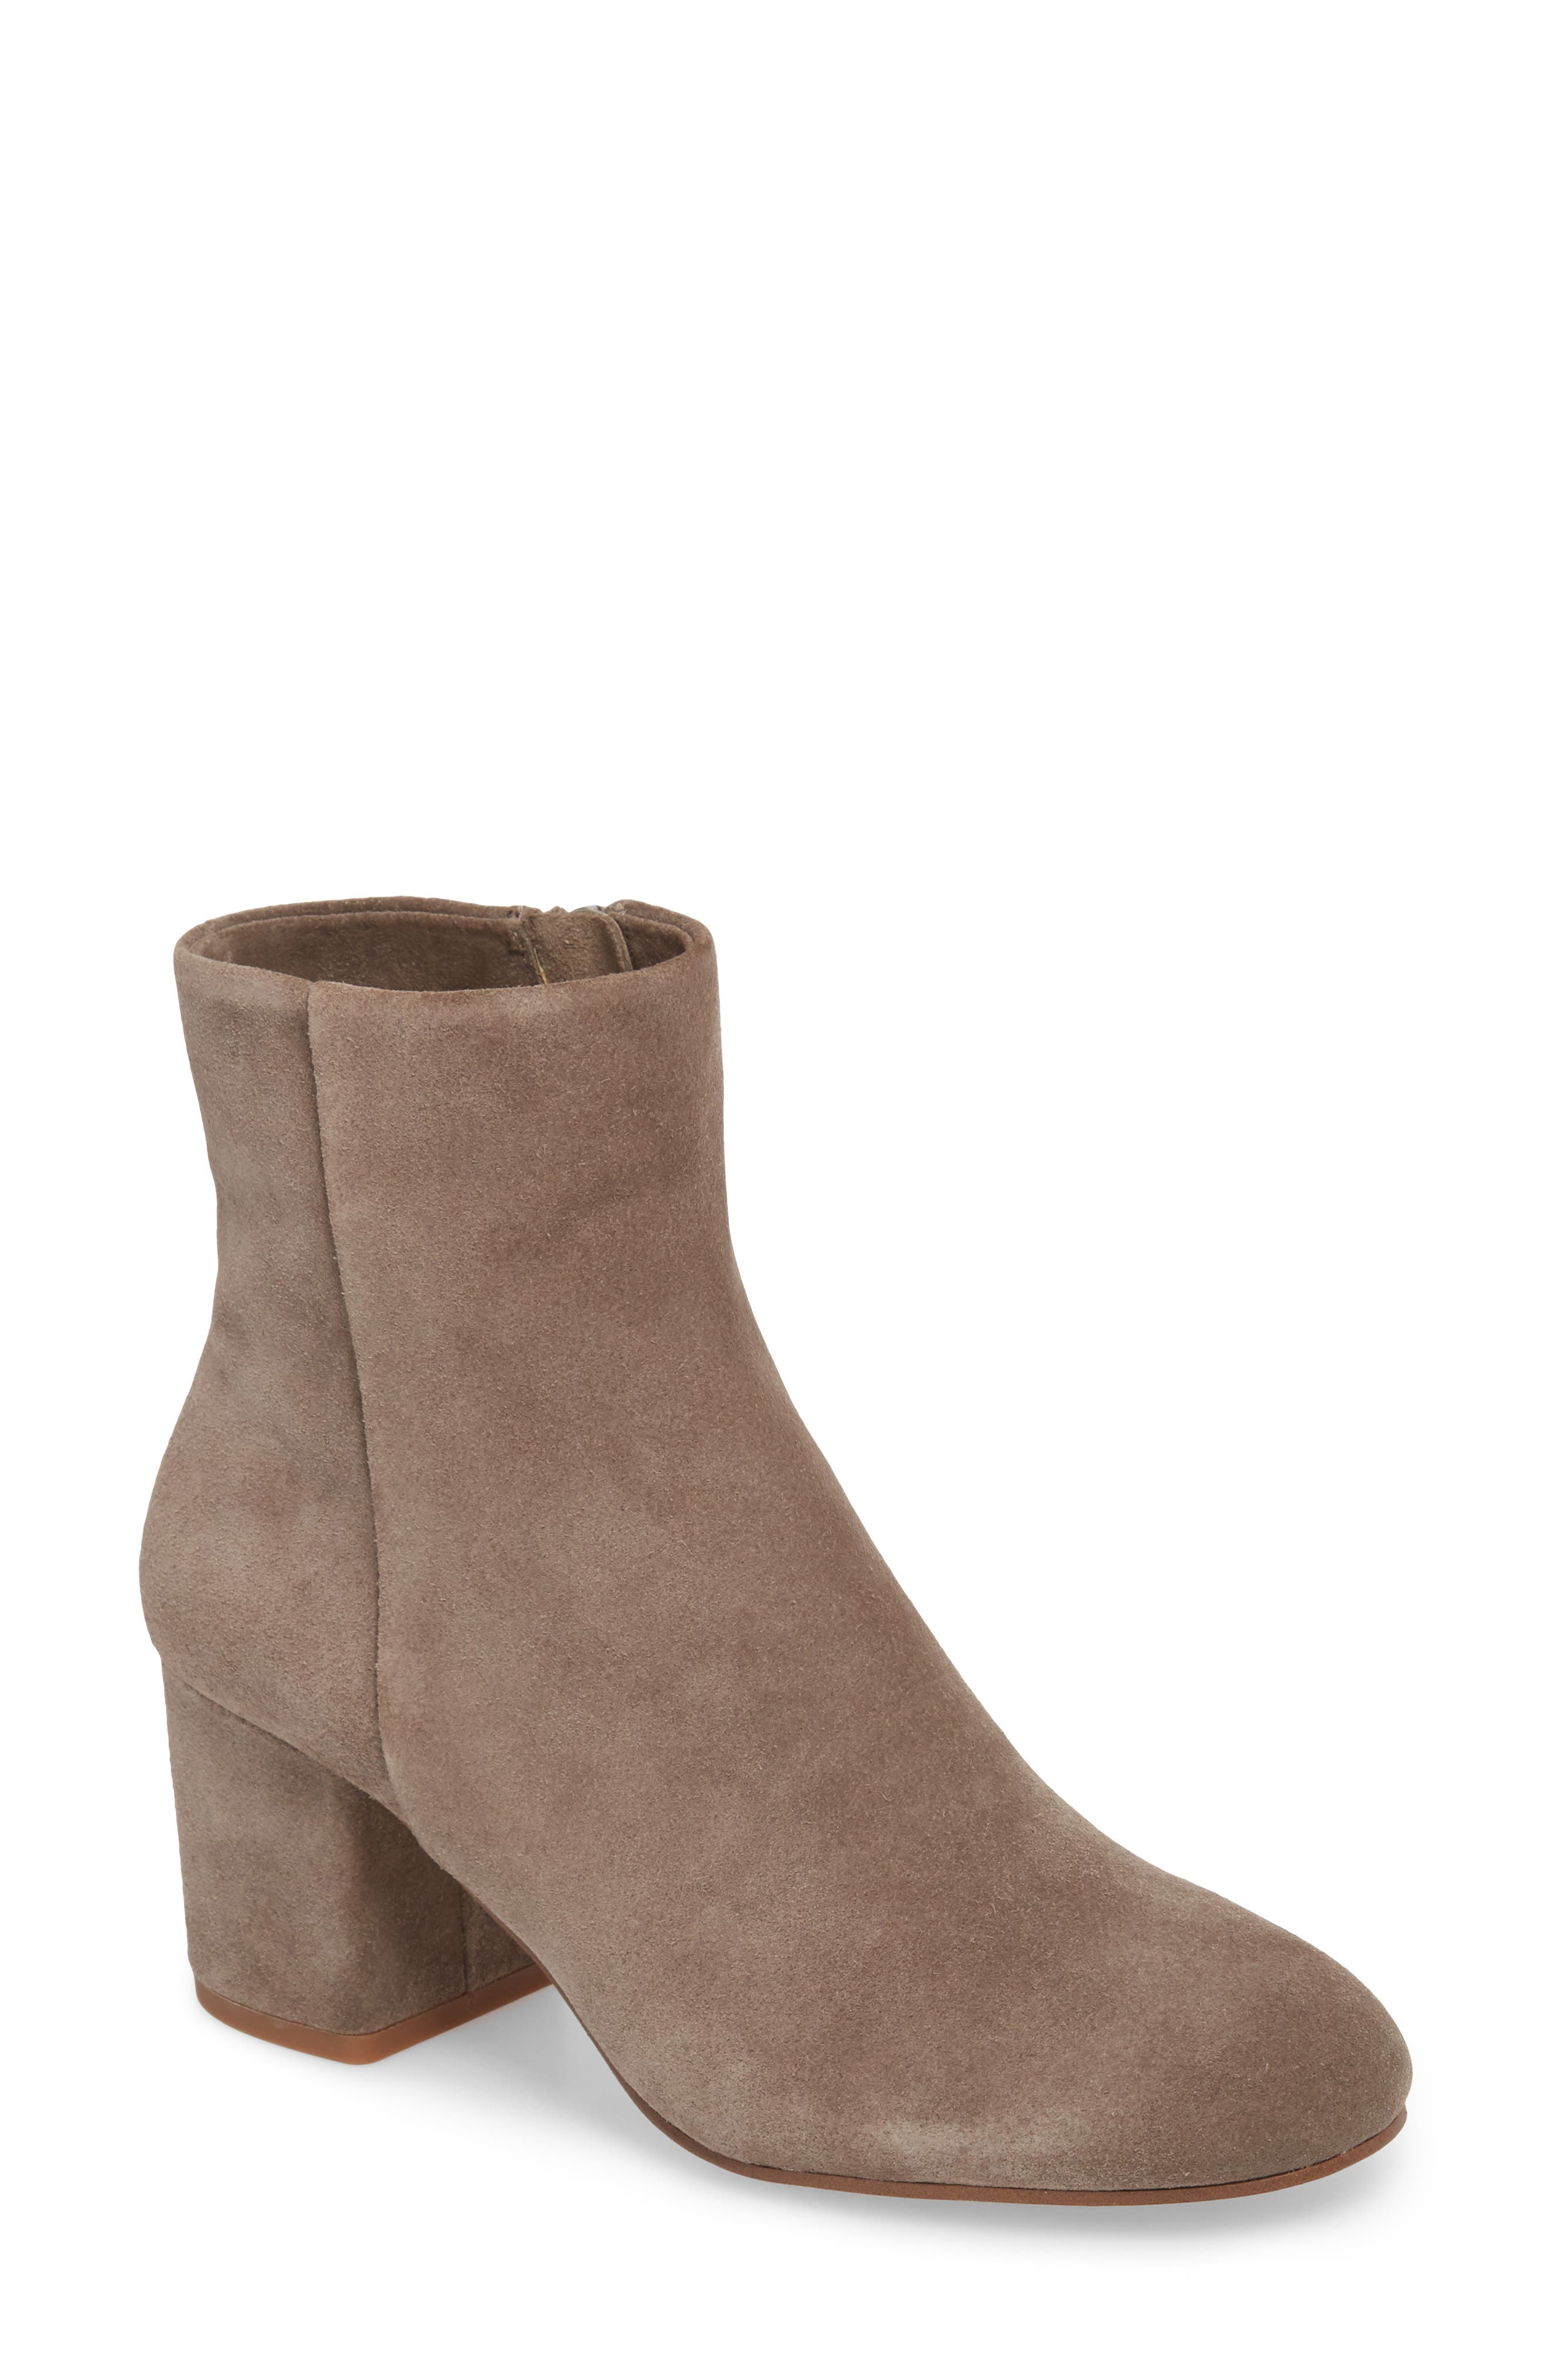 Nixie Bootie,                         Main,                         color, LIGHT CHARCOAL SUEDE